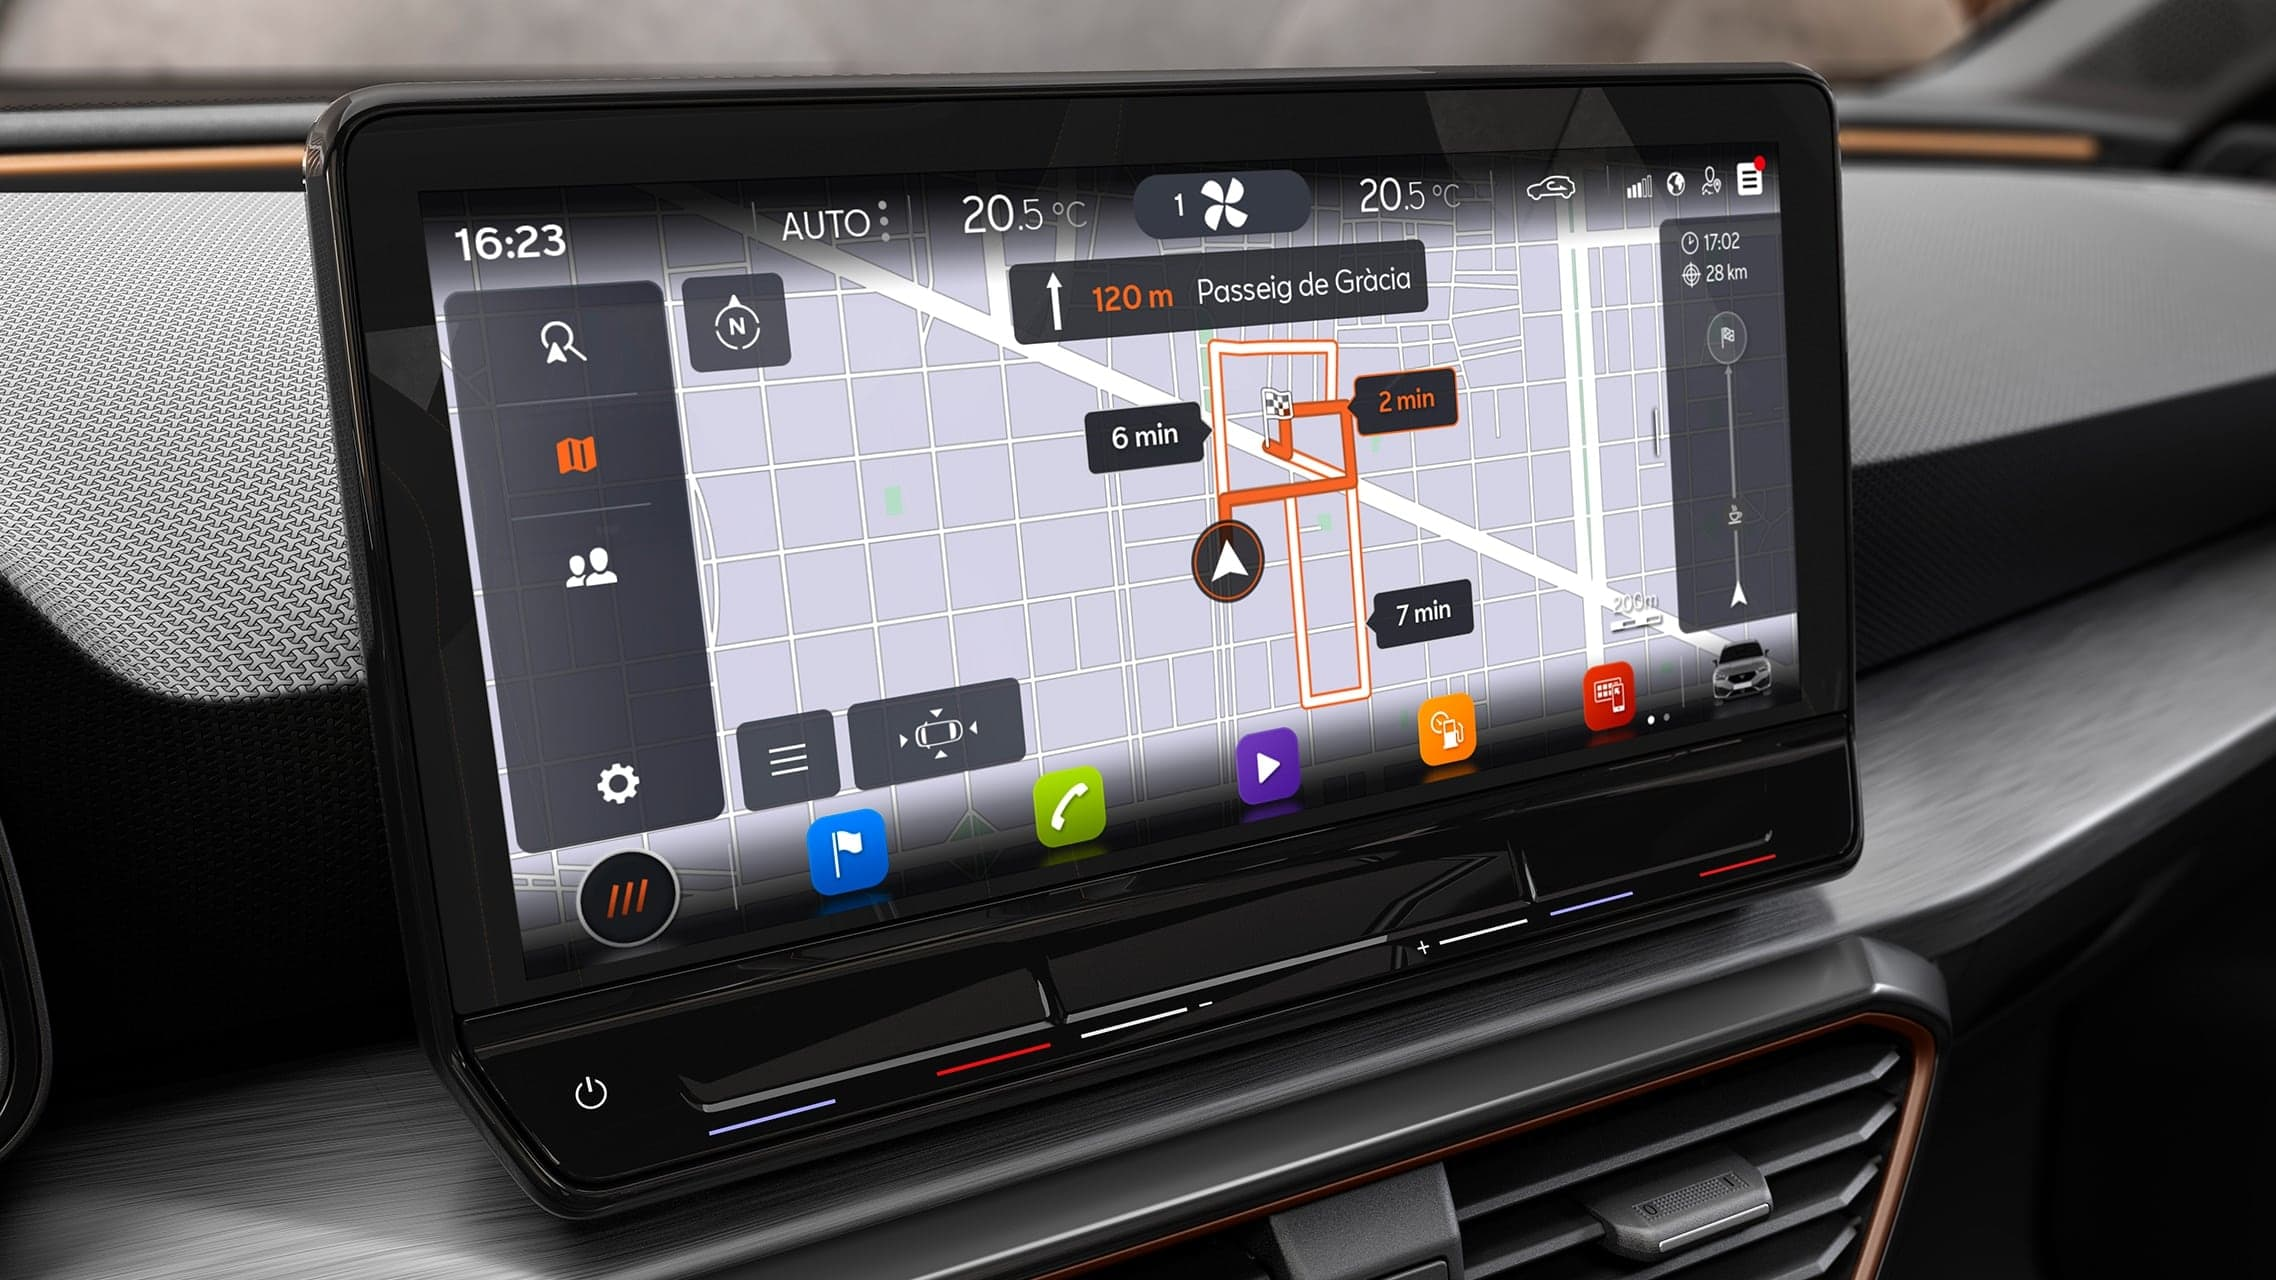 Real-time traffic GPS of the new CUPRA Leon Estate e-HYBRID Family Sports Car interior view. Interior view